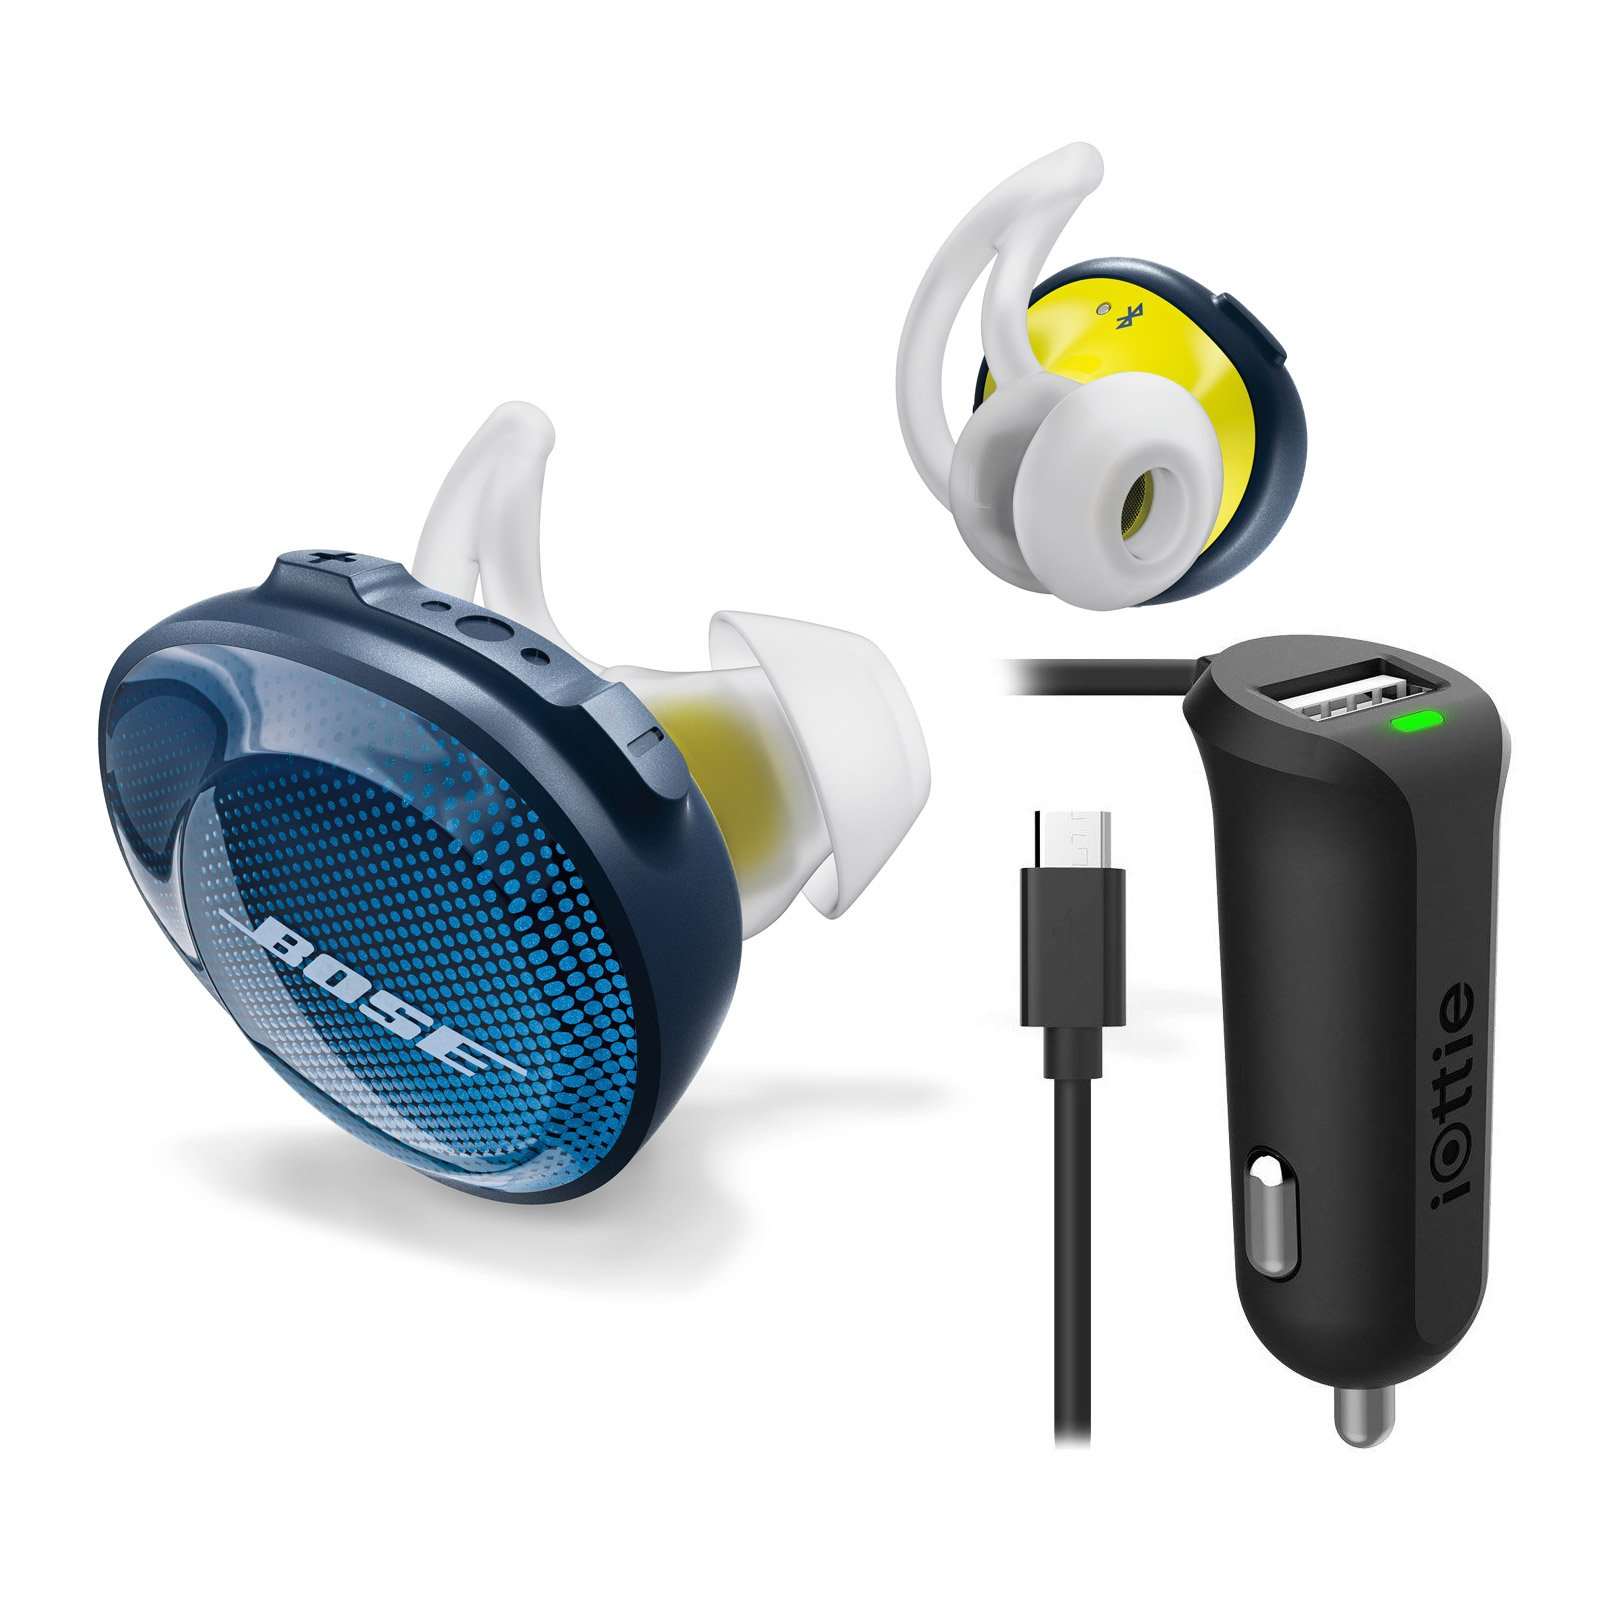 Bose SoundSport Free Truly Wireless In-Ear Headphones, Midnight Blue, with Micro USB Car Charger